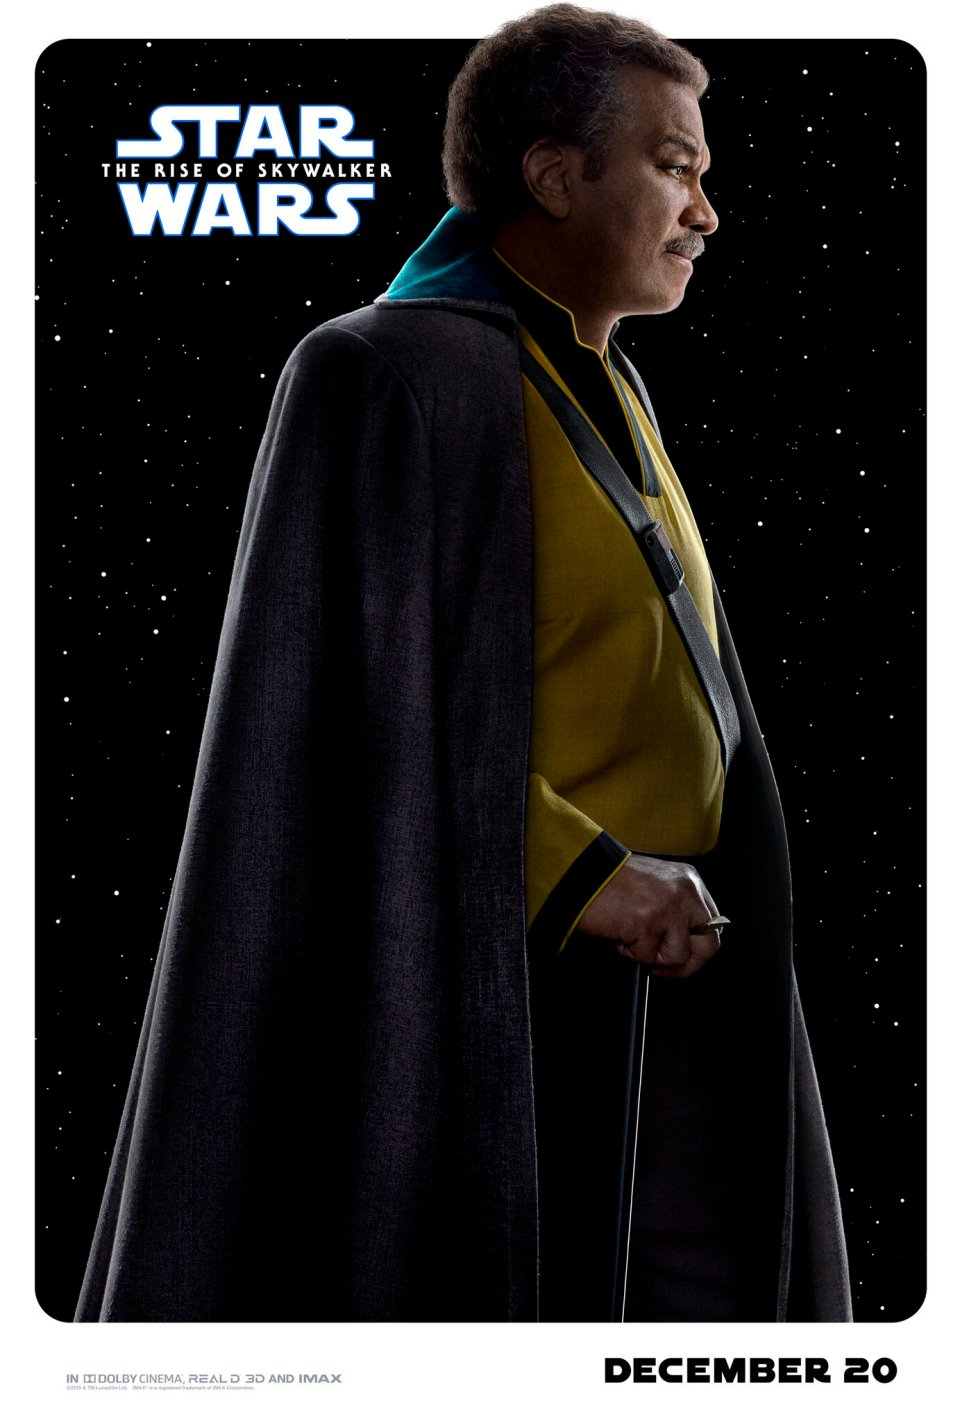 11-character-posters-released-for-star-wars-the-rise-of-skywalker6.jpg